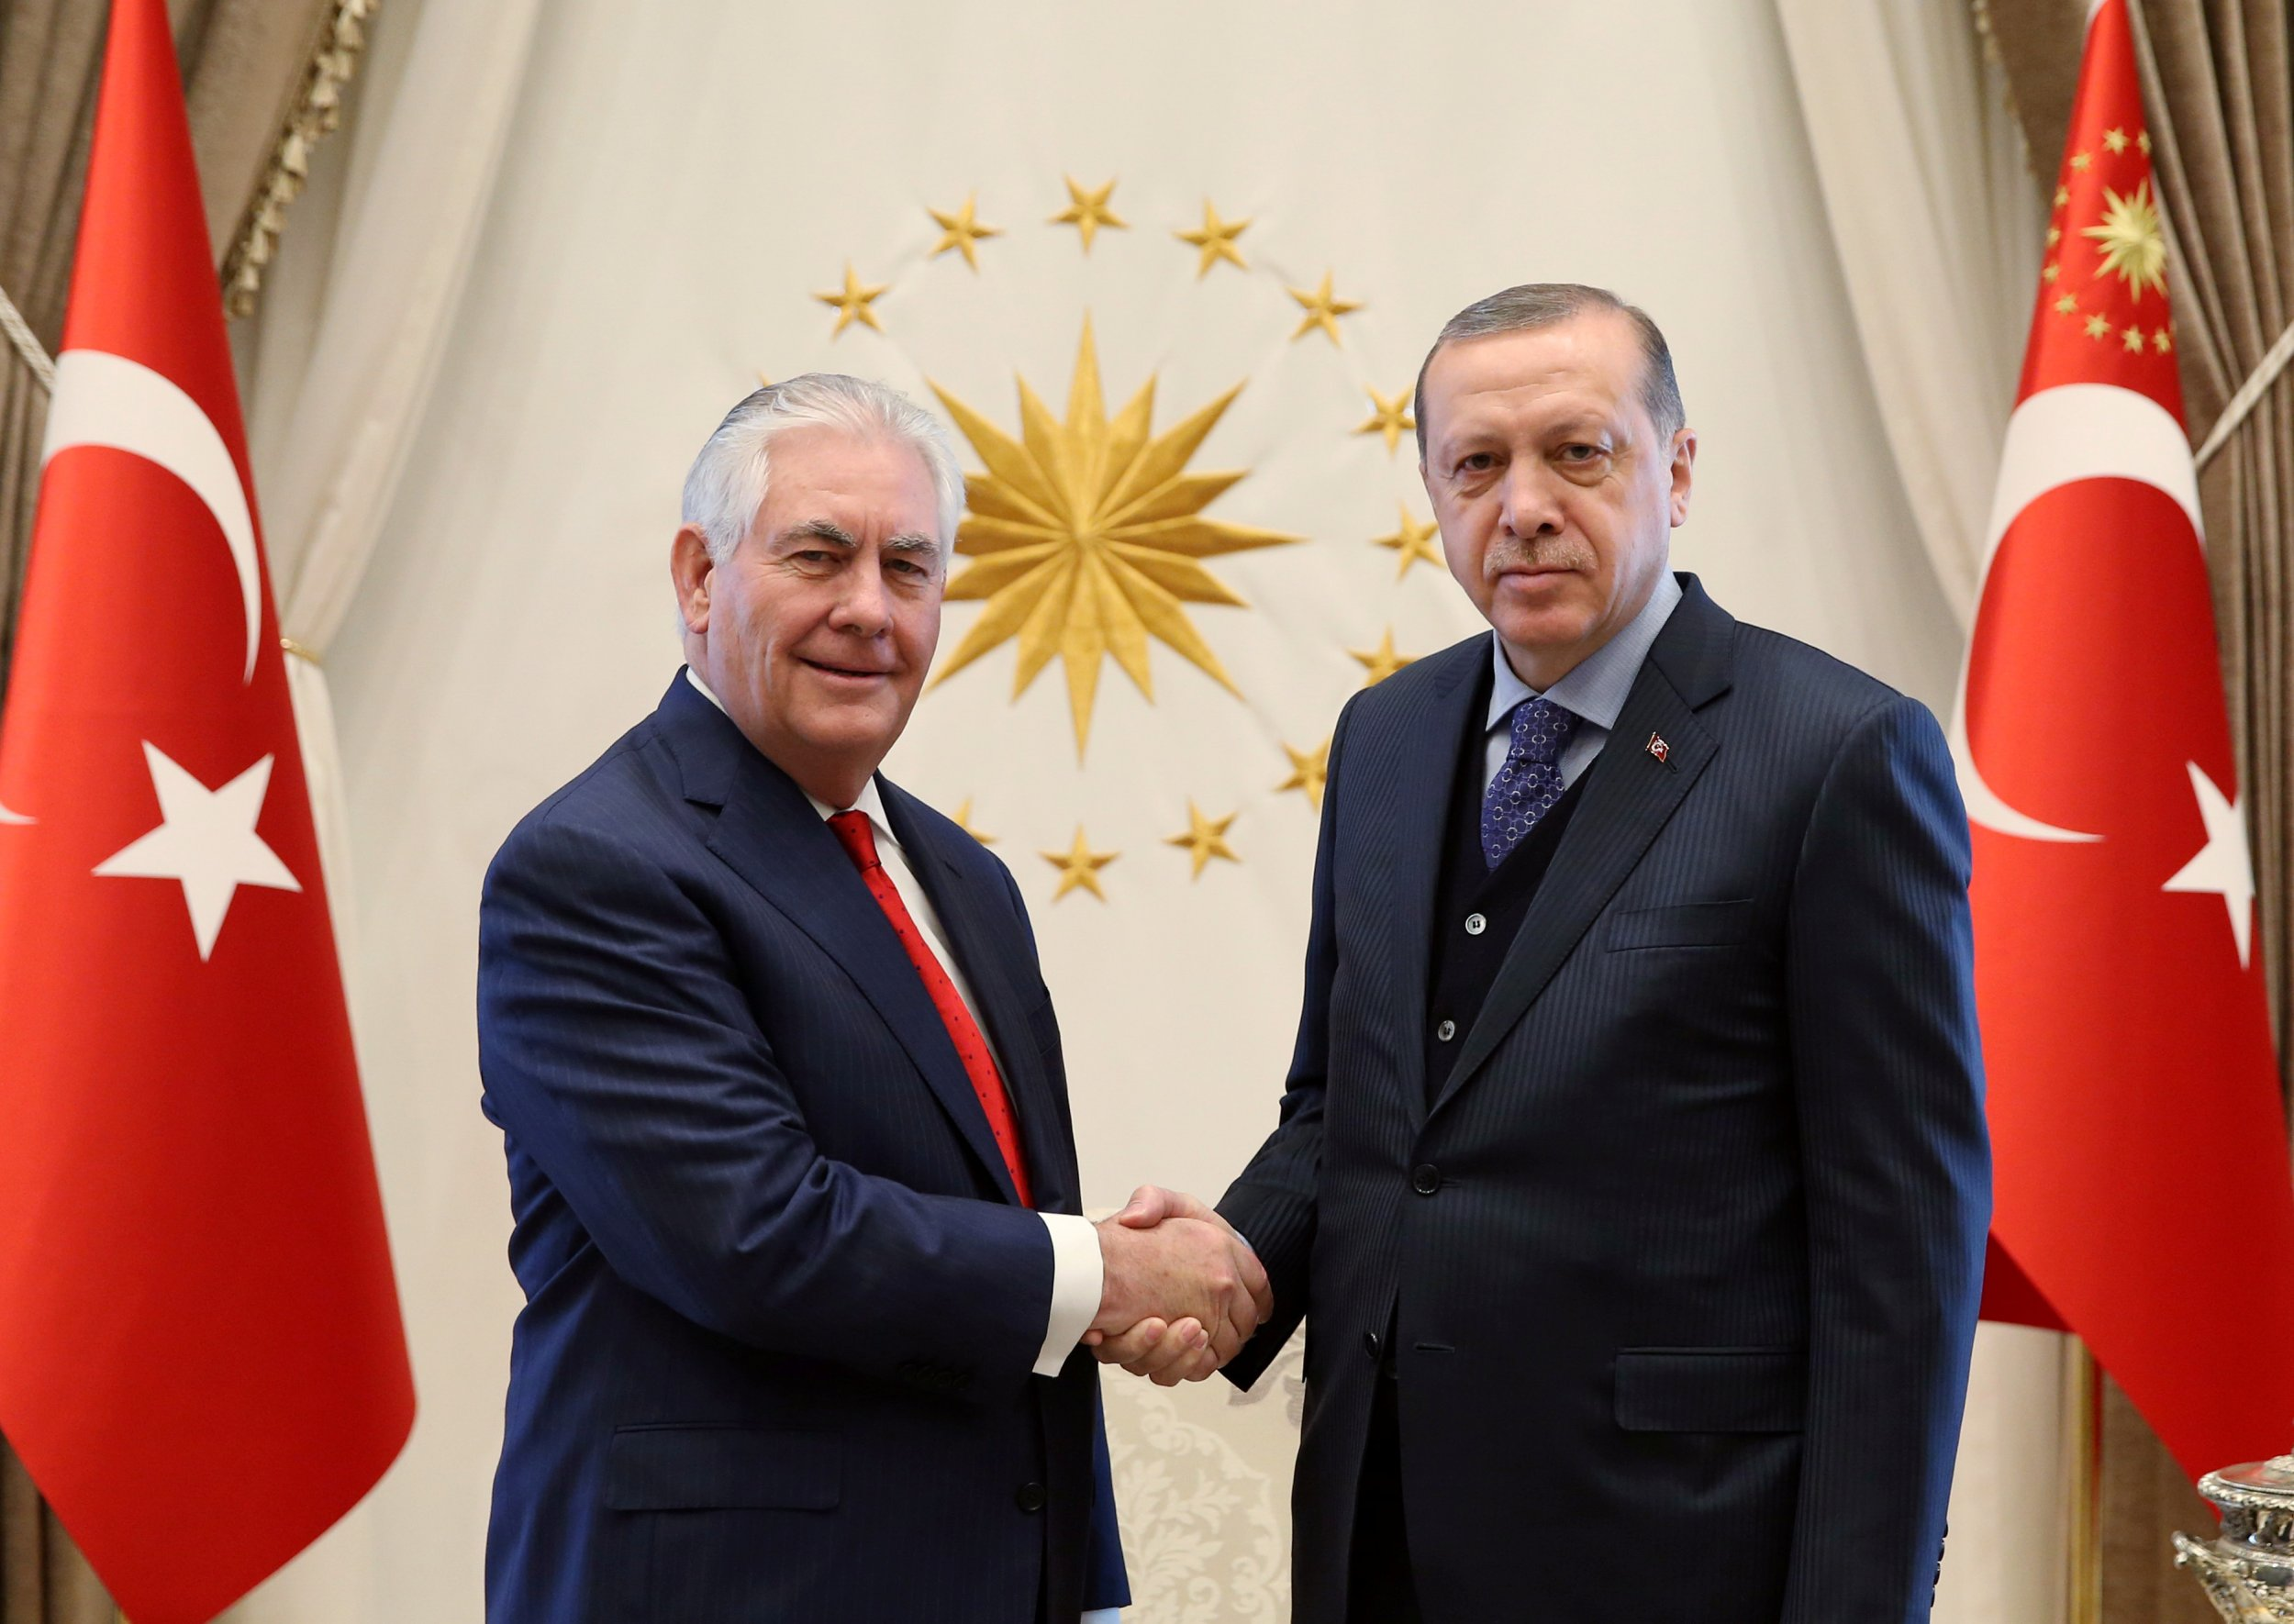 Erdogan meets with U.S. Secretary of State Rex Tillerson